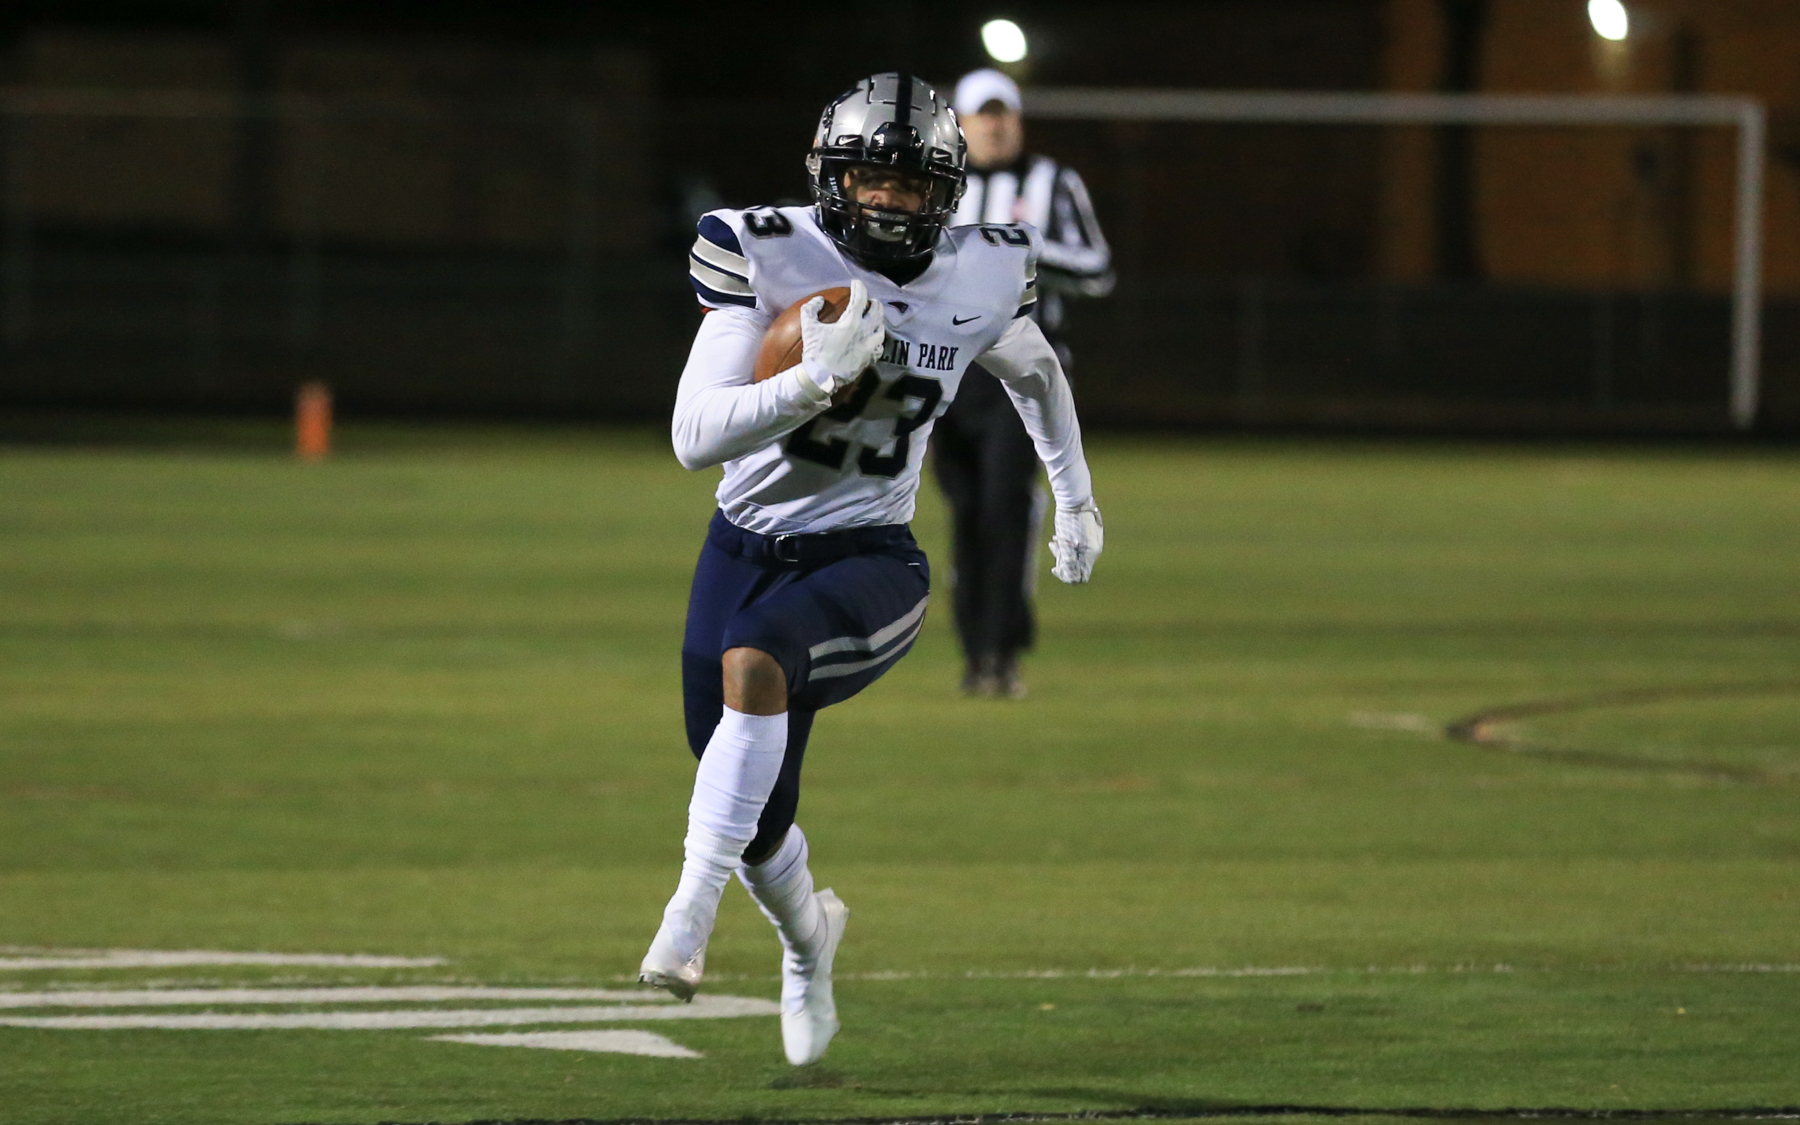 Champlin Park's Shawn Shipman (23) dashes down the sideline for a nice gain against Osseo Thursday night. Shipman scored on an 80-yard run in the first quarter during the Rebels' 14-7 victory over the Orioles in Osseo. Photo by Jeff Lawler, SportsEngine